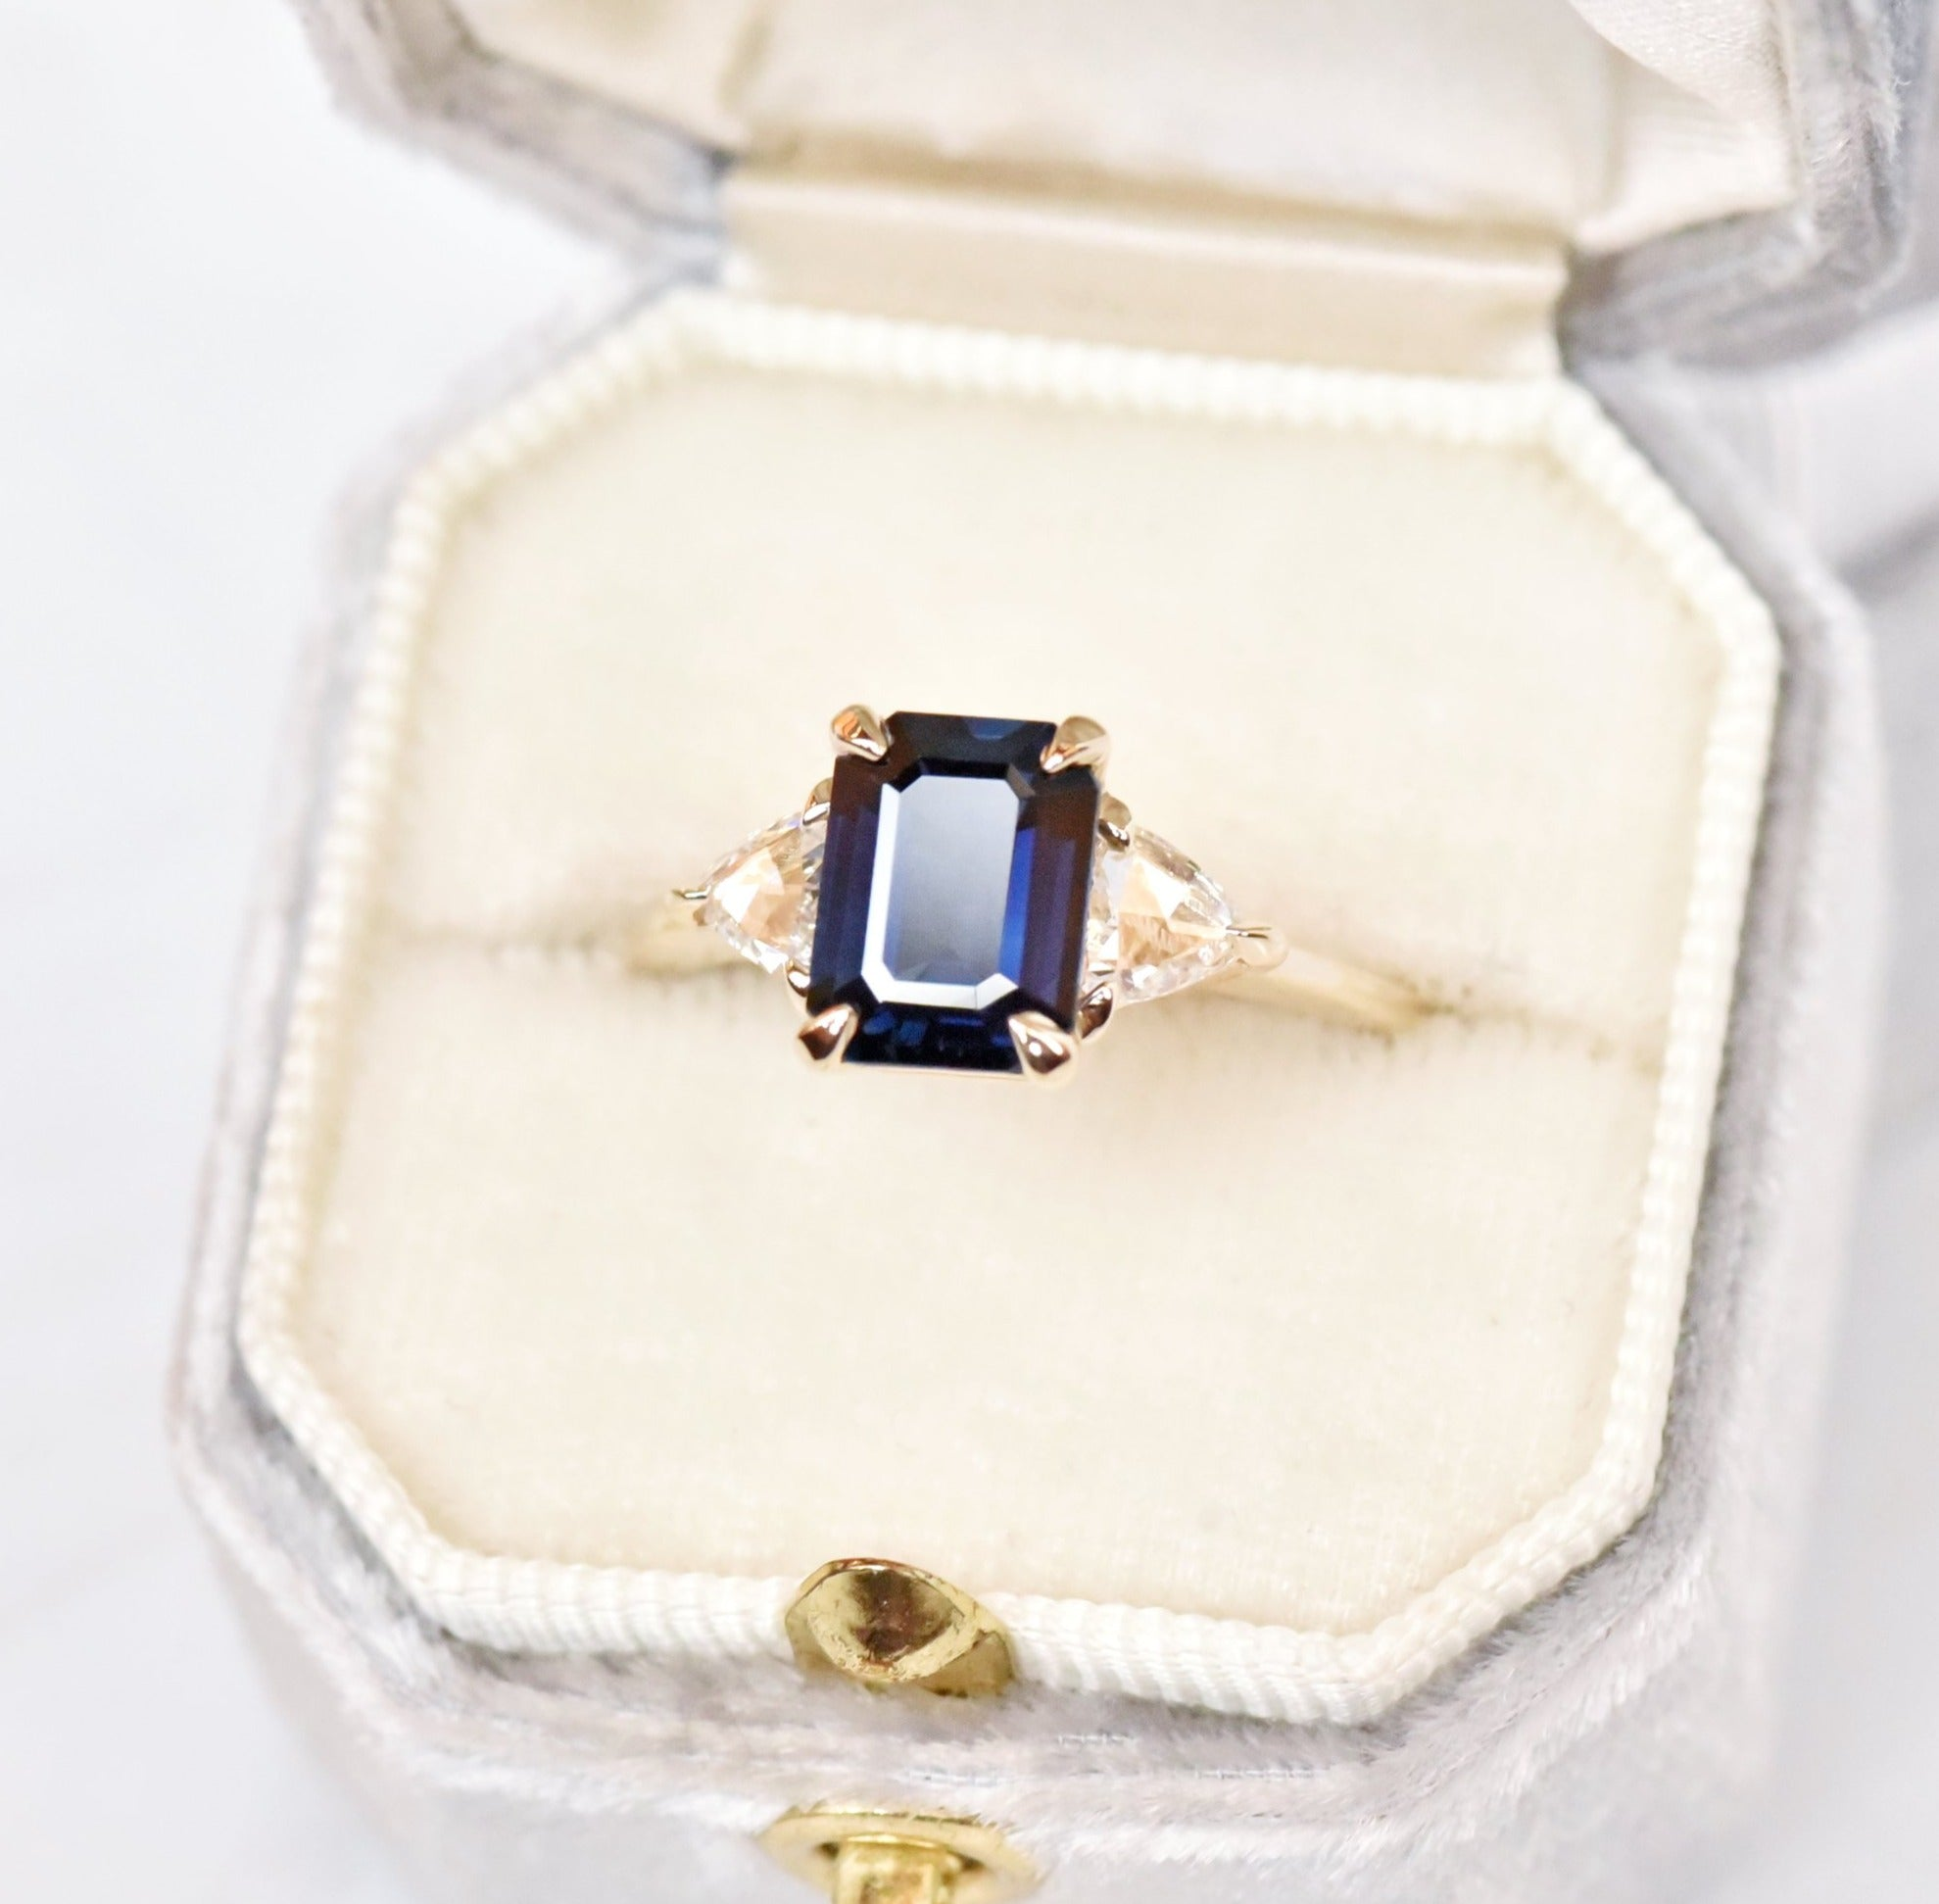 1.9ct Zara Blue Sapphire Three Stone Diamond Engagement Ring